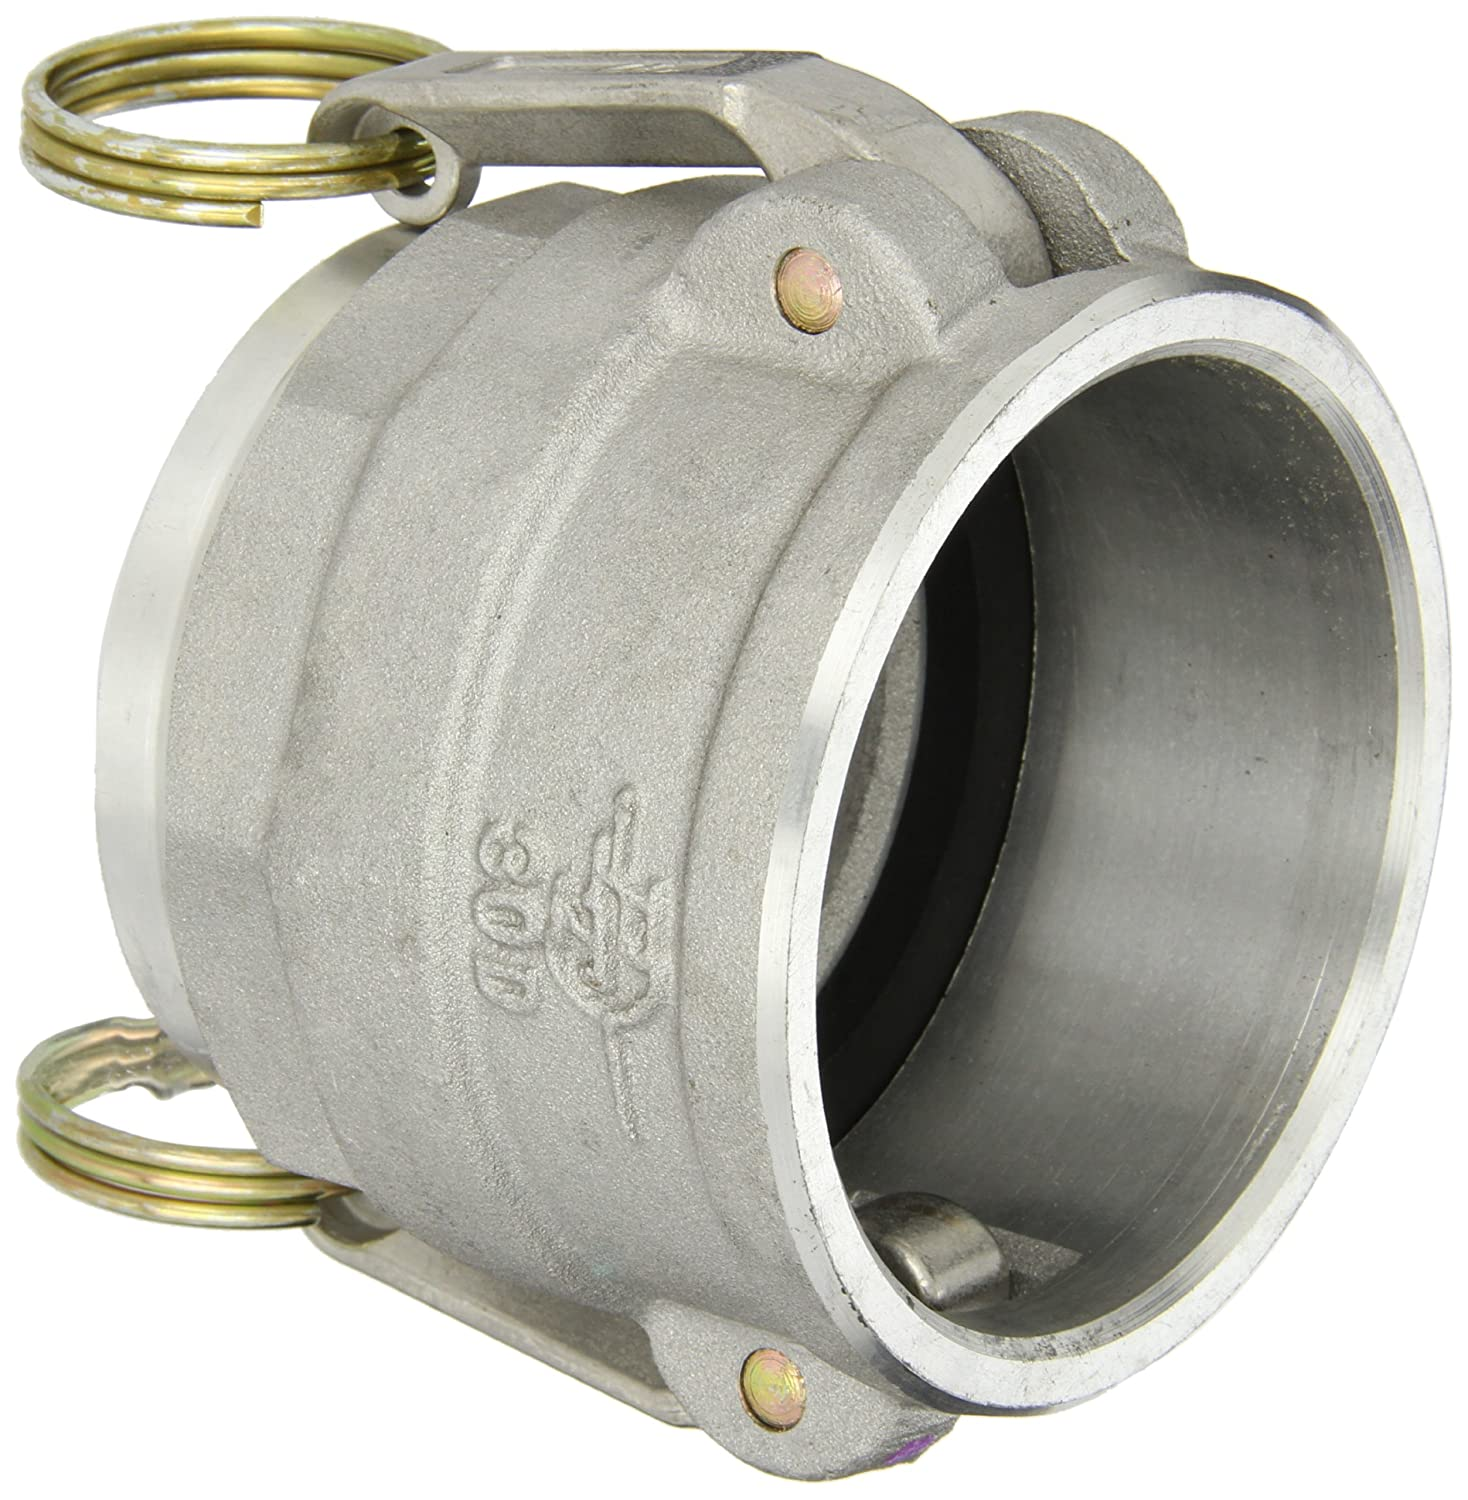 PT Coupling But Weld Schedule 40 Pipe Series 30DWB Aluminum Cam and Groove Hose Fitting 3 Coupler x Butt Weld DWB Coupler